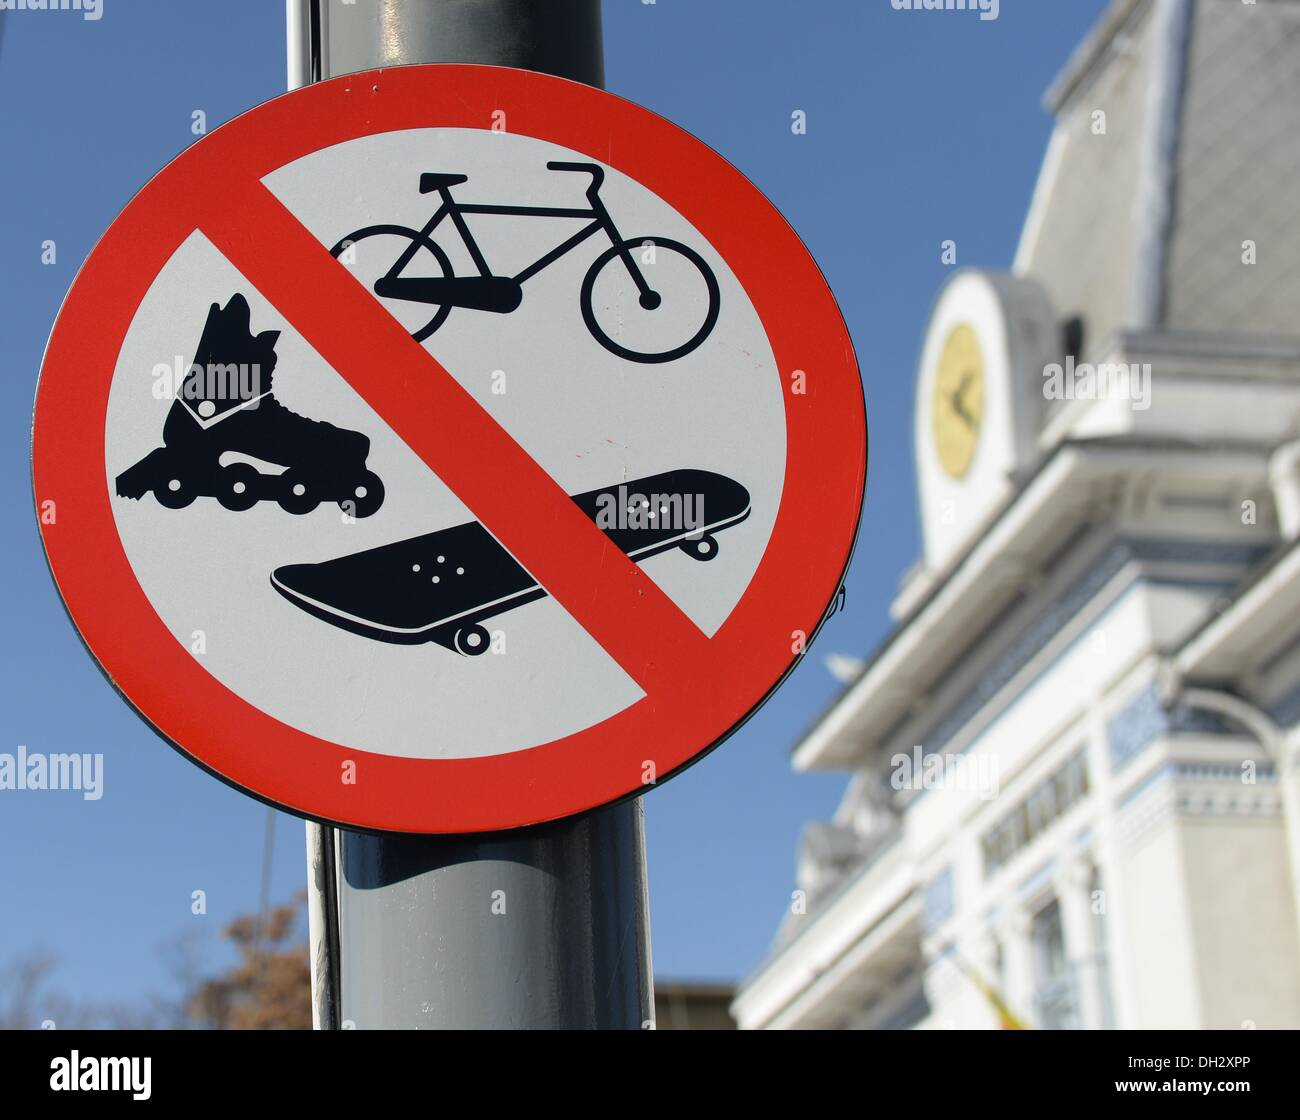 Pitesti, Romania. 21st Oct, 2013. A traffic sign prohibits skating, skateboarding and cycling in the city center in Pitesti, Romania, 21 October 2013. Photo: JENS KALAENE/dpa/Alamy Live News - Stock Image